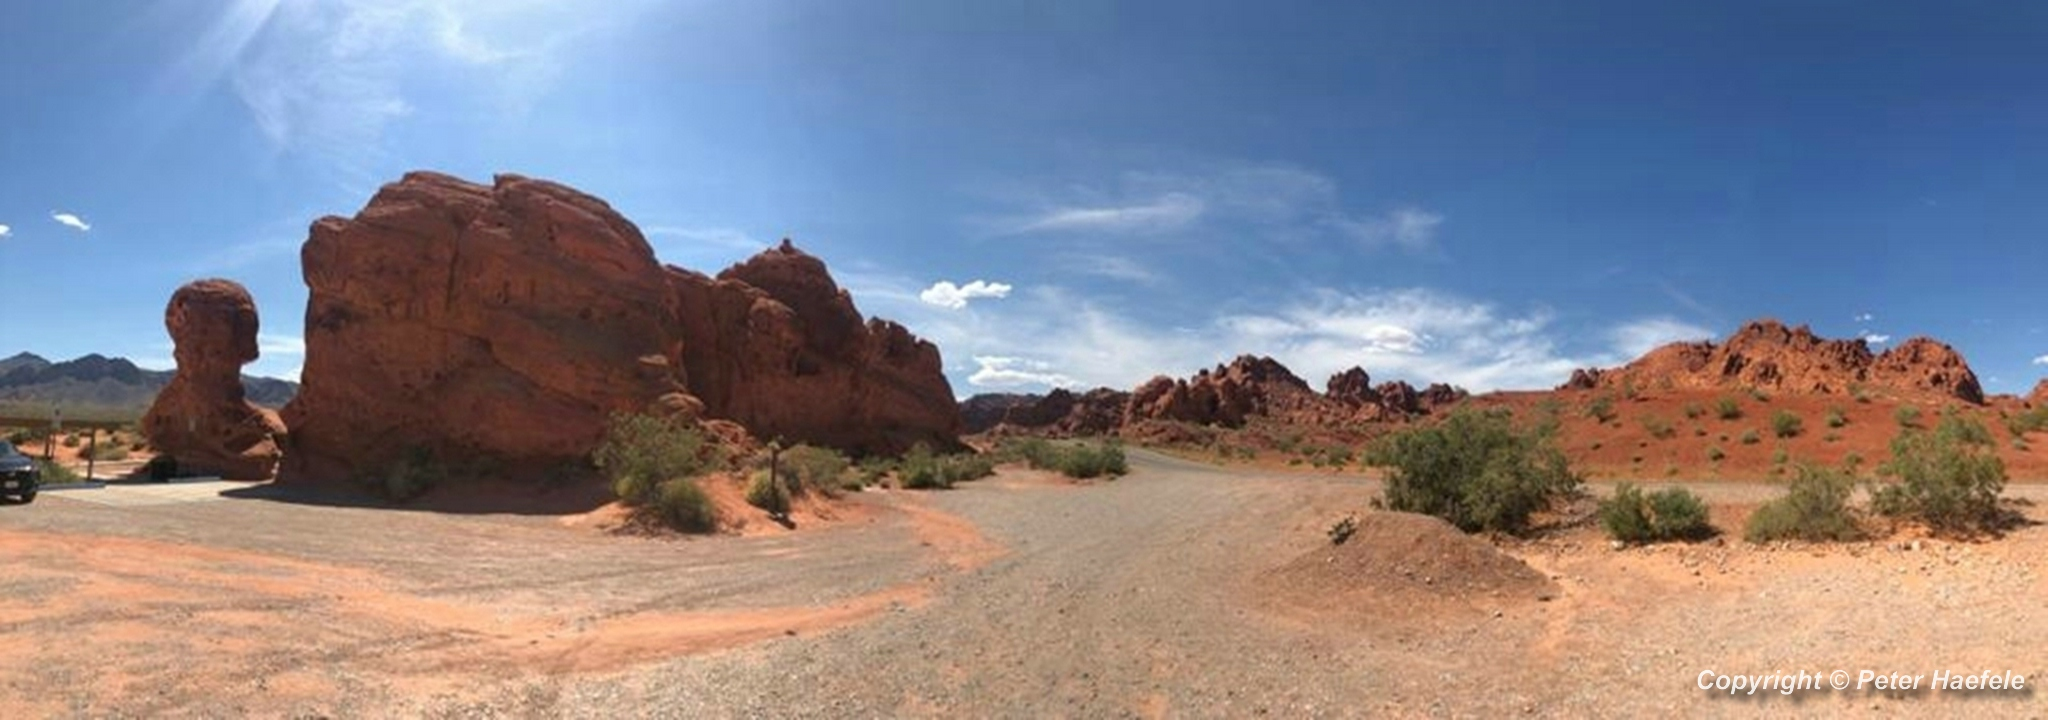 Roadtrip USA - Valley of Fire State Park - Nevada - Panorama